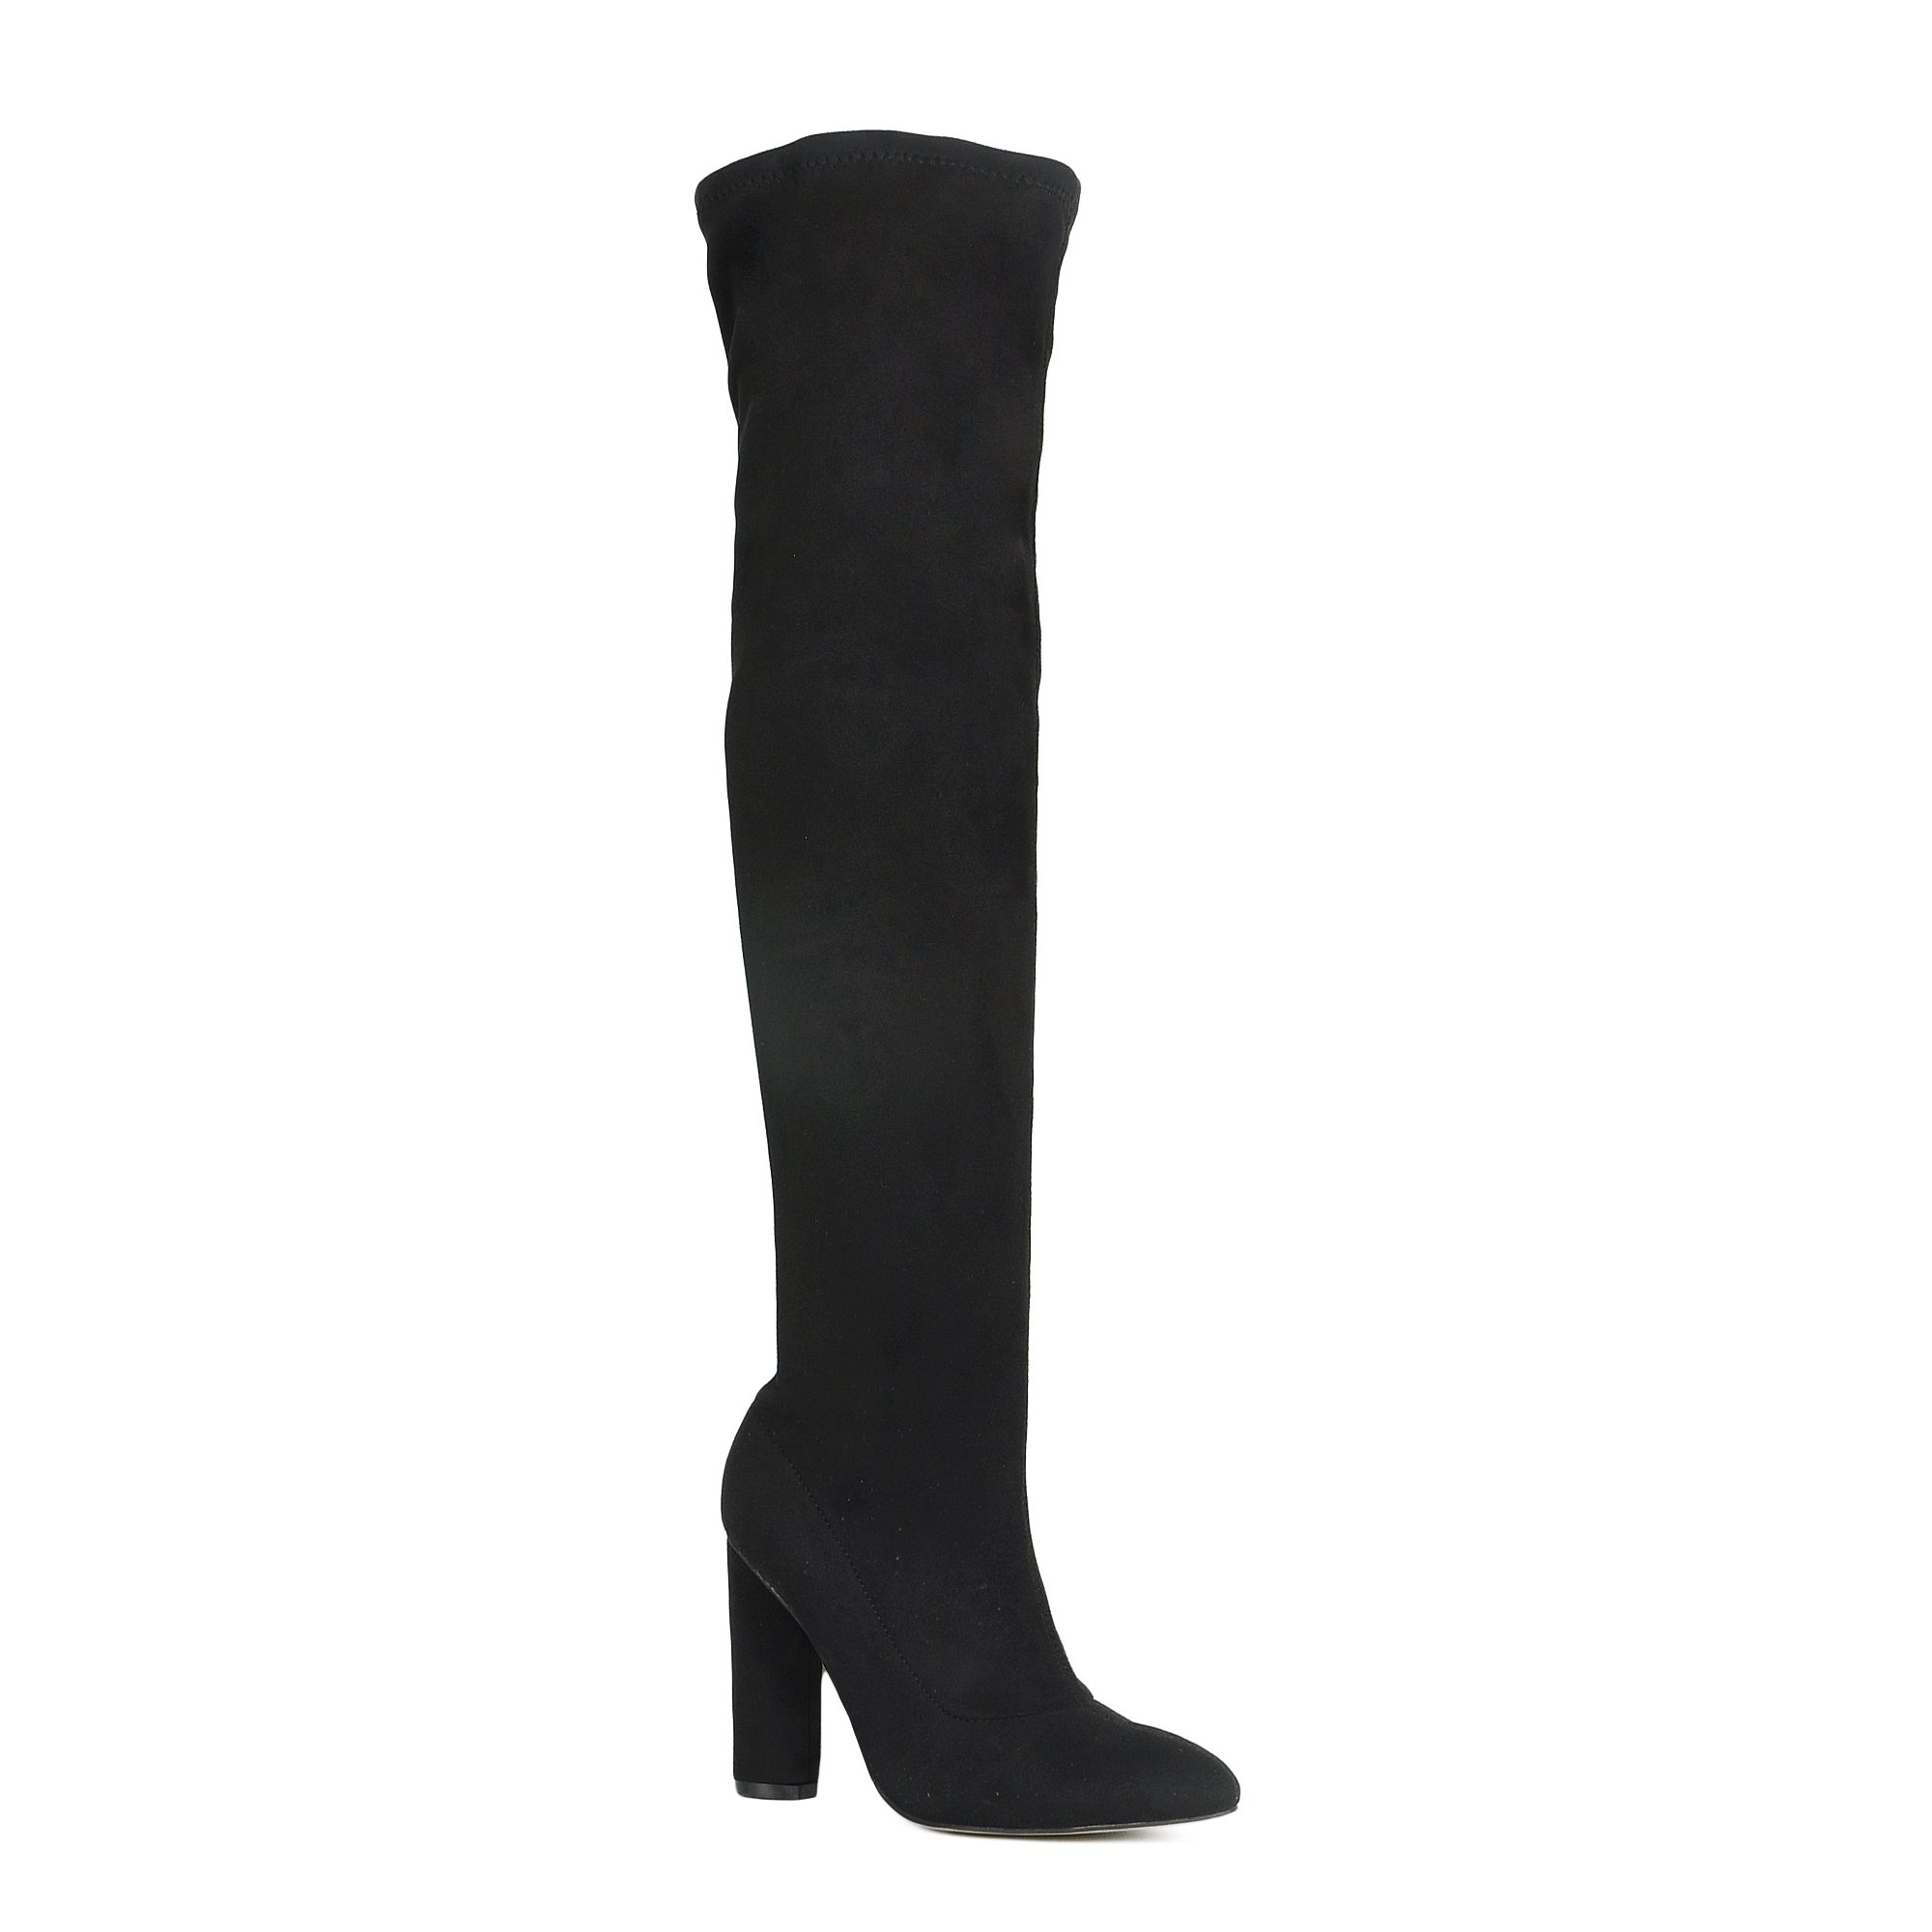 Women's Over The Knee Boots Chunky Block Heel Thigh High Boots Fashion Dress Boots Black 7